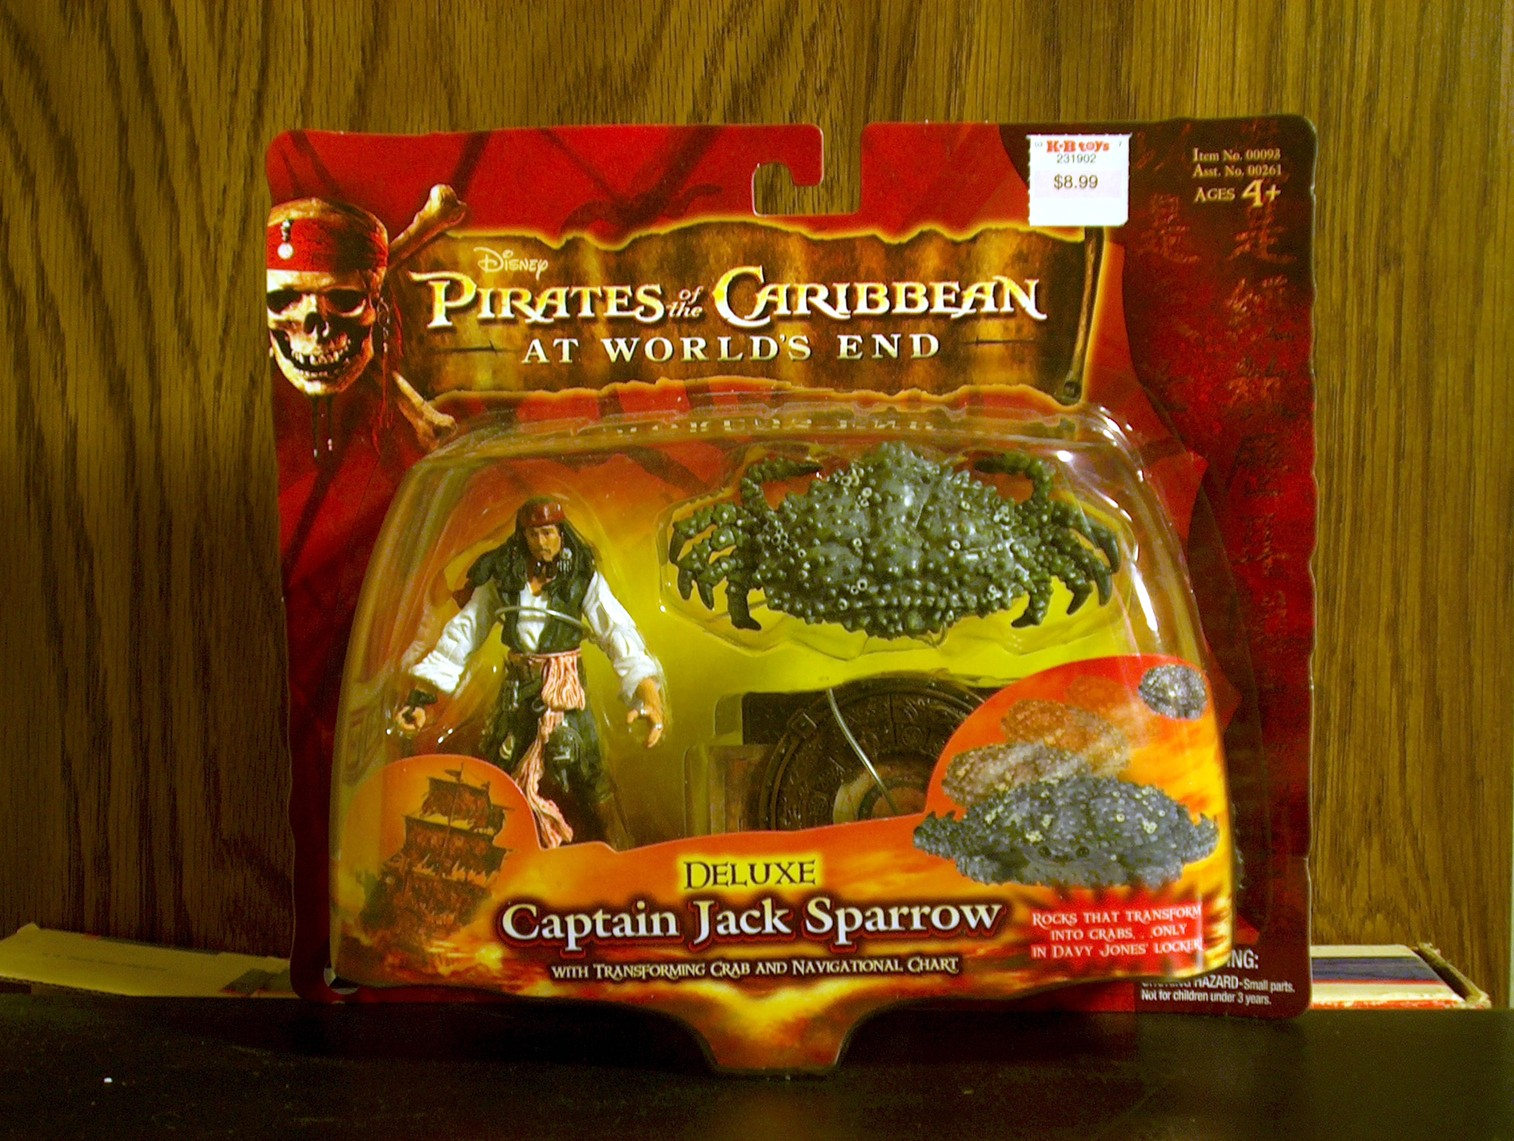 Captain Jack Sparrow (Crab & Chart)